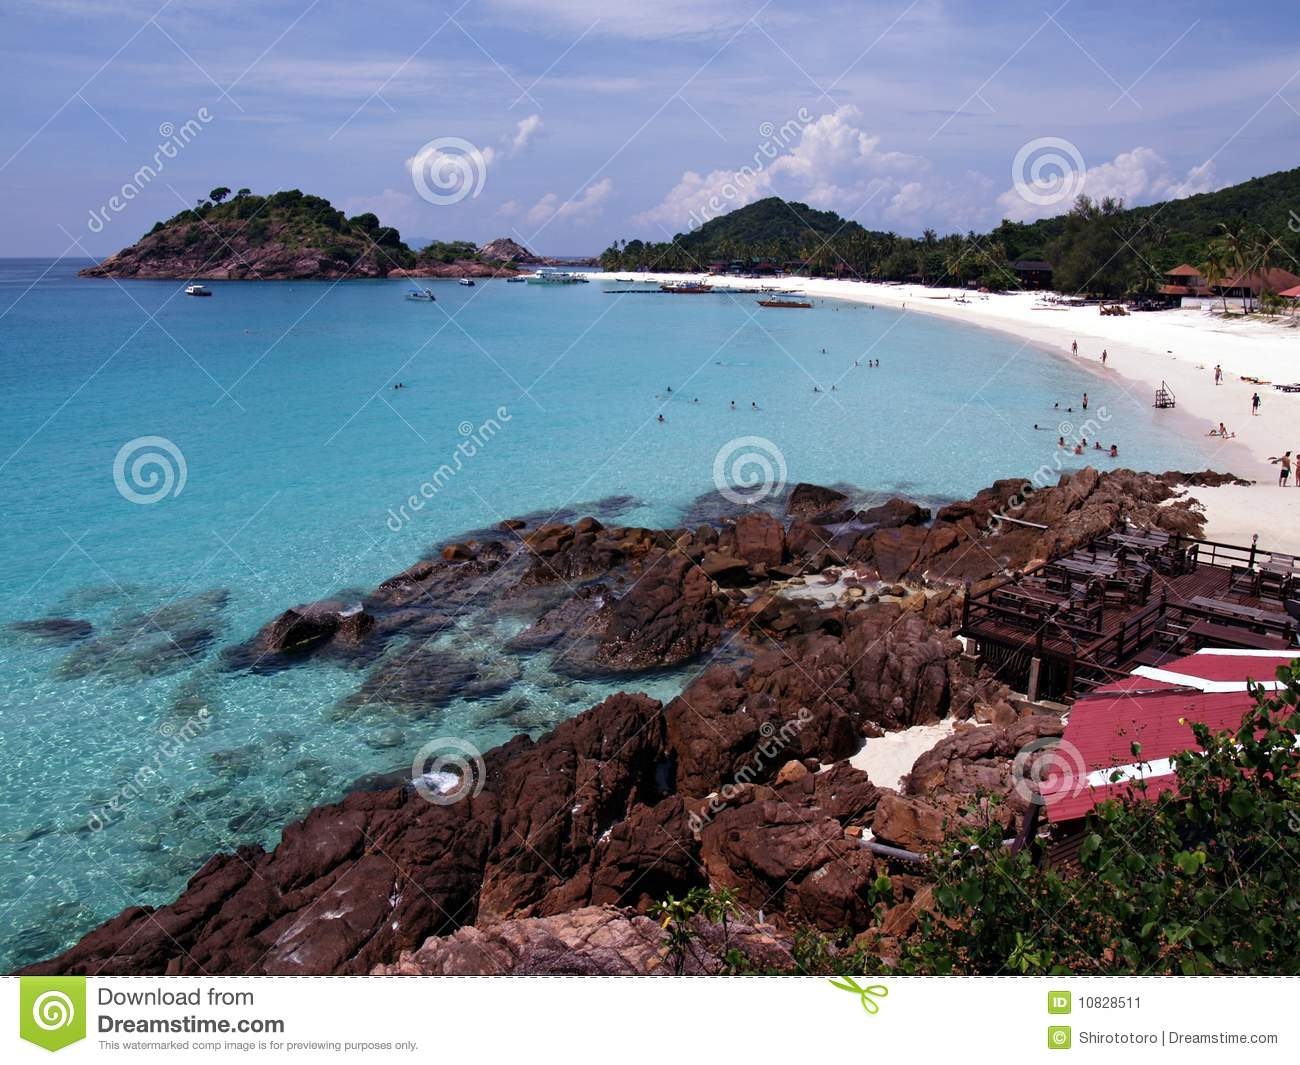 resort industry in malaysia specifically redang The taaras beach & spa resort  po box 126, main post office, pulau redang  20928, malaysia  especially attiqa, one of the guest service officers.